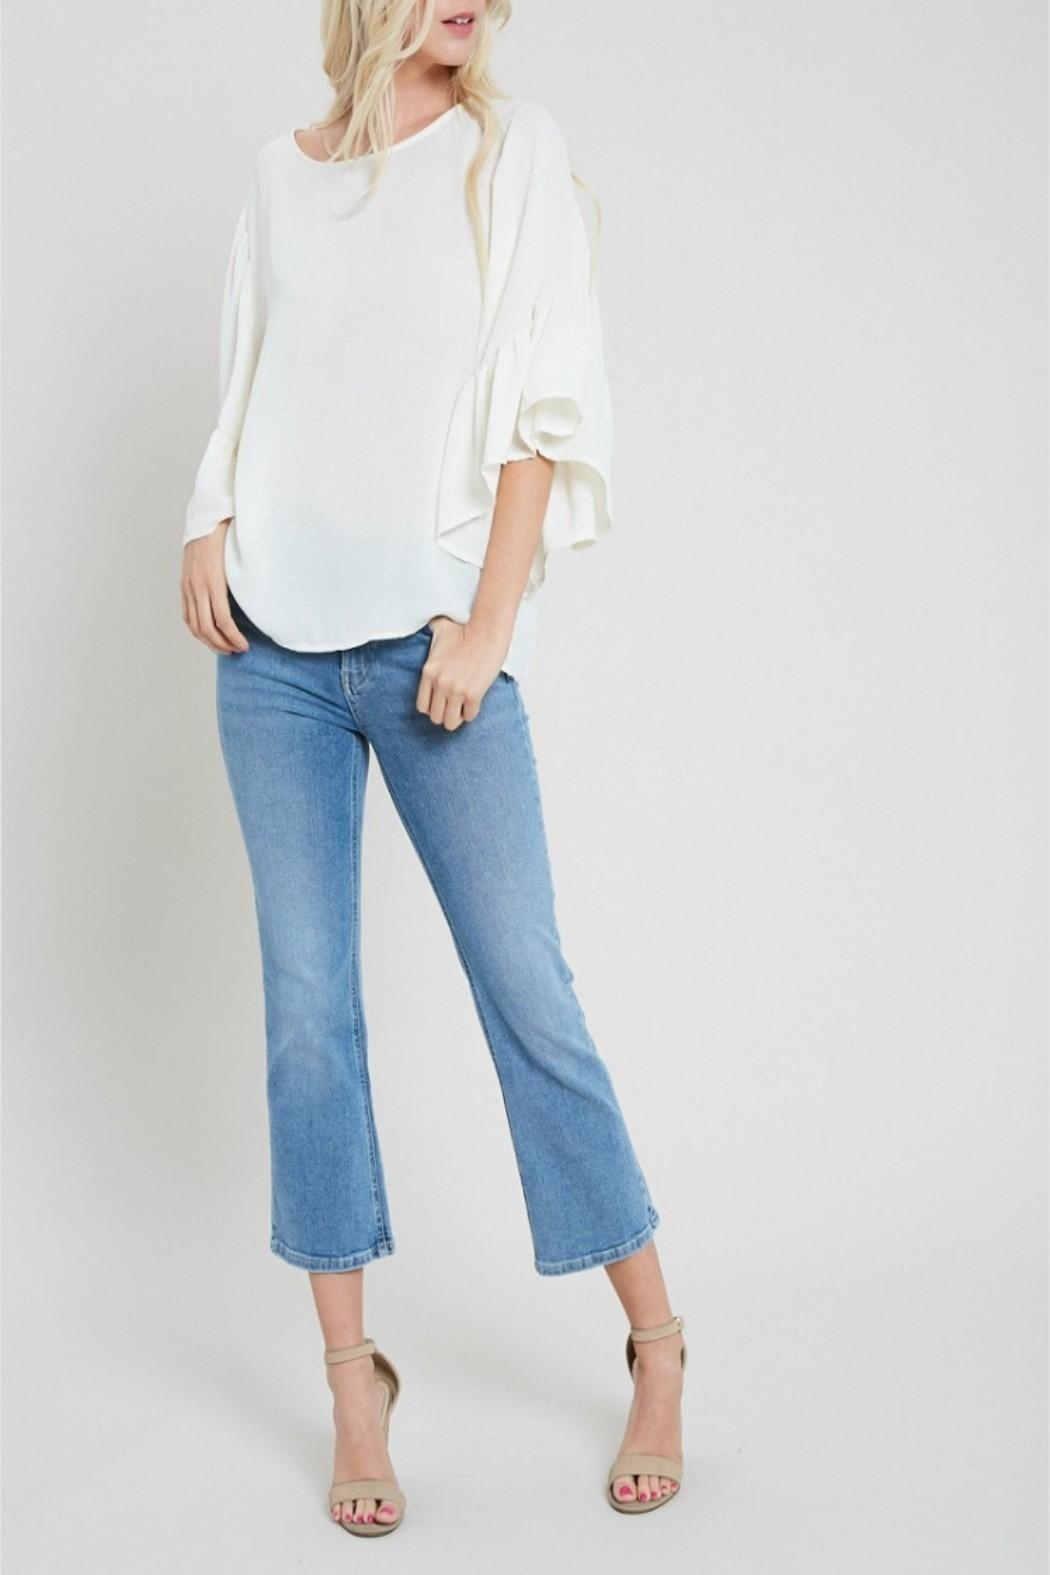 eesome Boho Bell-Sleeve Top - Side Cropped Image